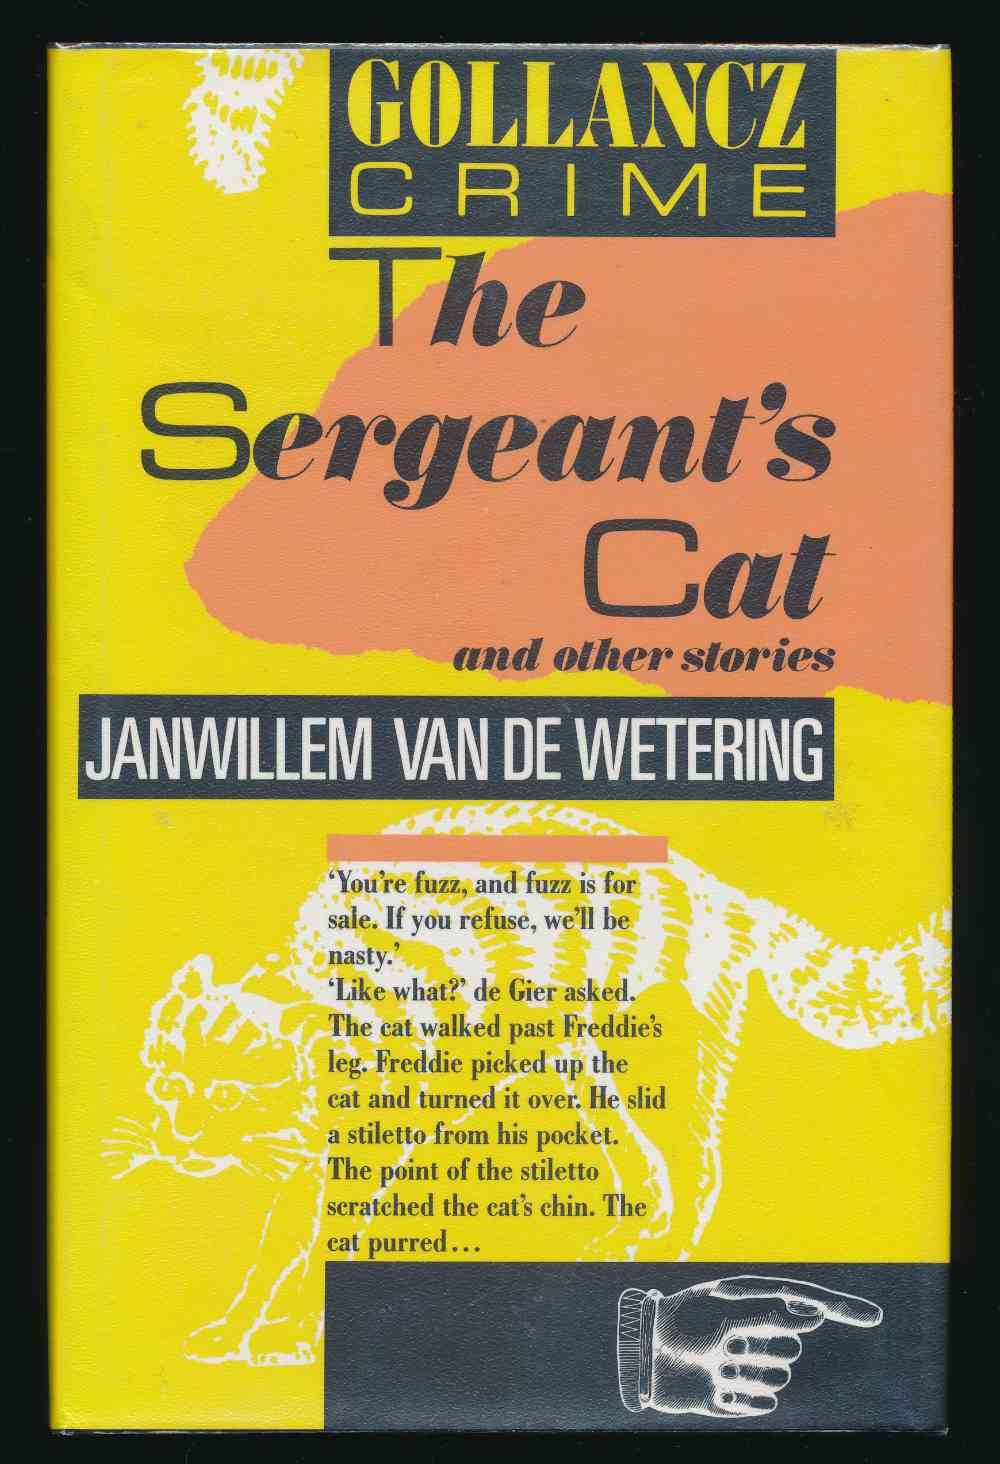 The sergeant's cat, and other stories